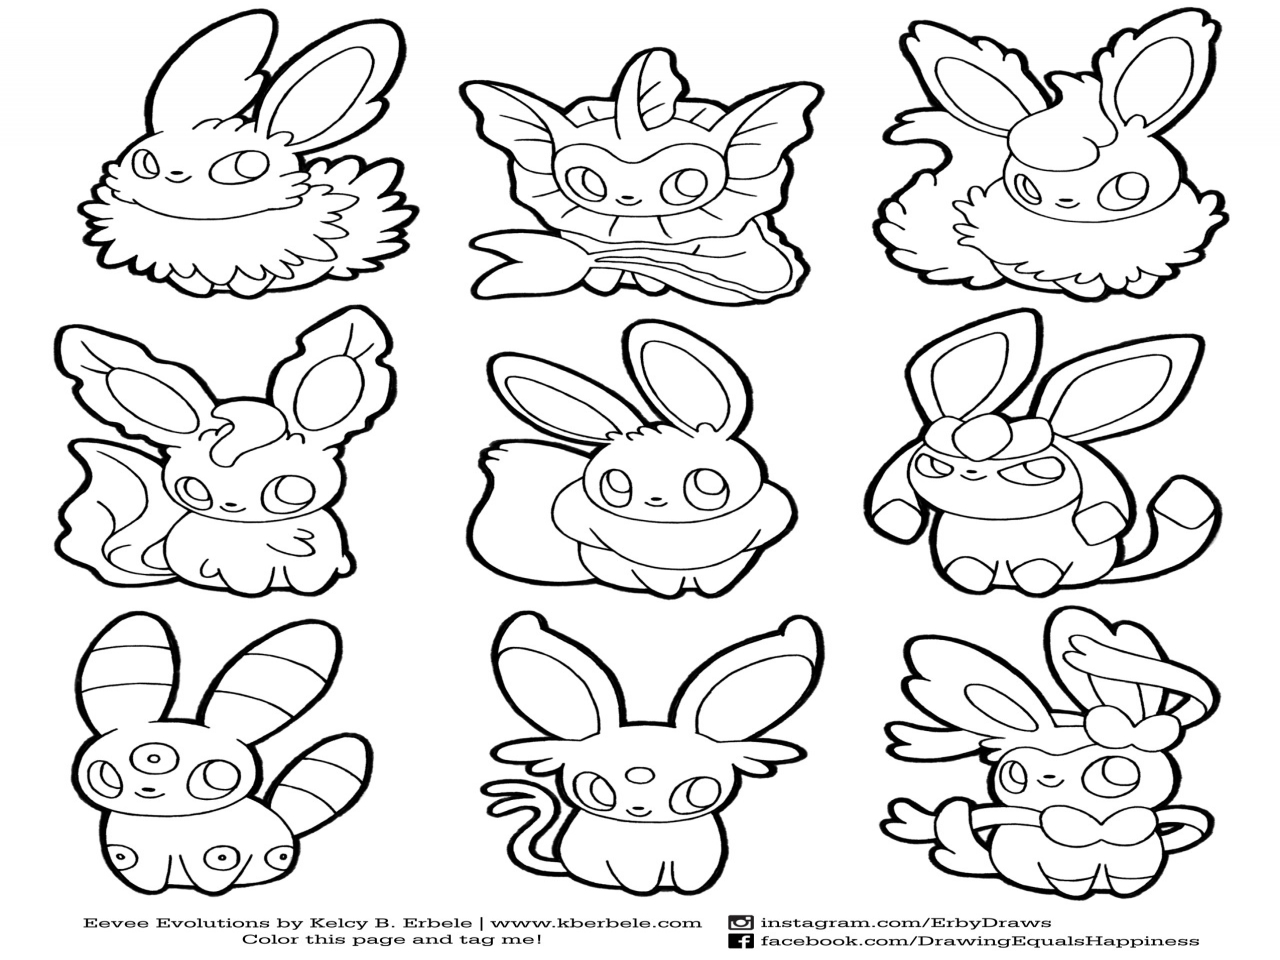 Eeveelutions Coloring Pages At Getdrawings